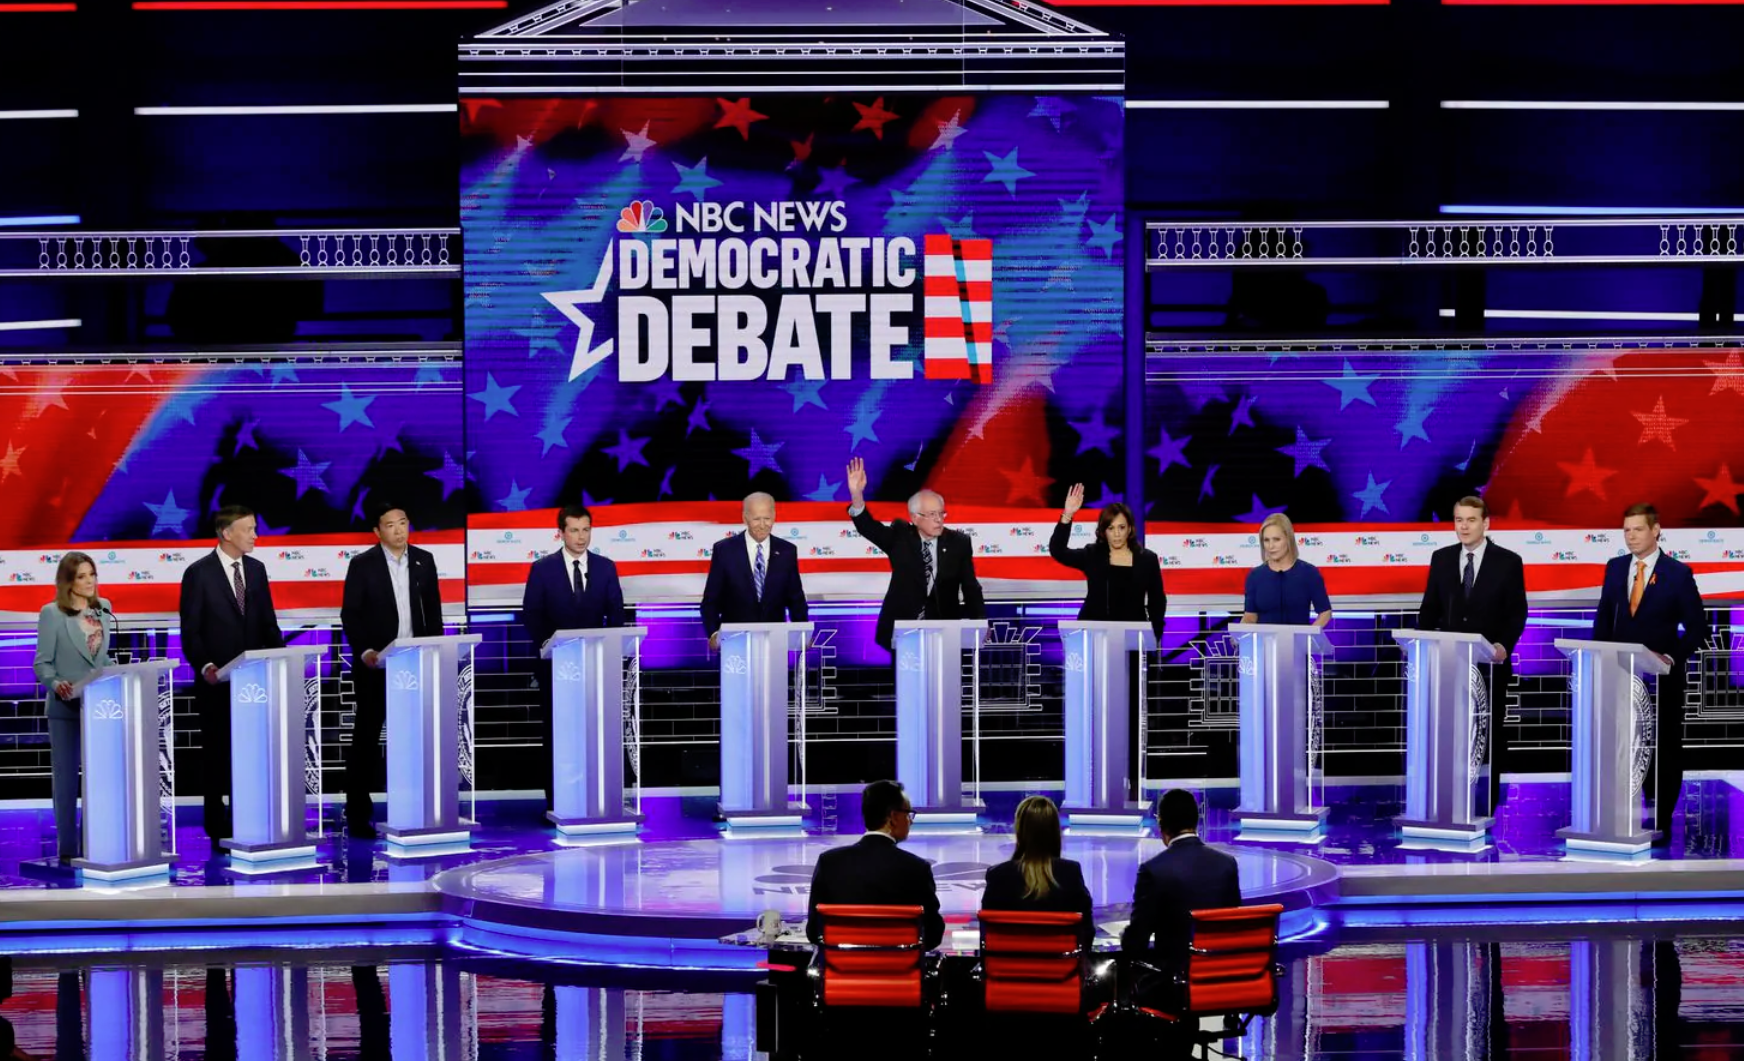 Biden Bounced Back From First Democratic Debate, Holds His Lead Ahead of Tonight's Debate